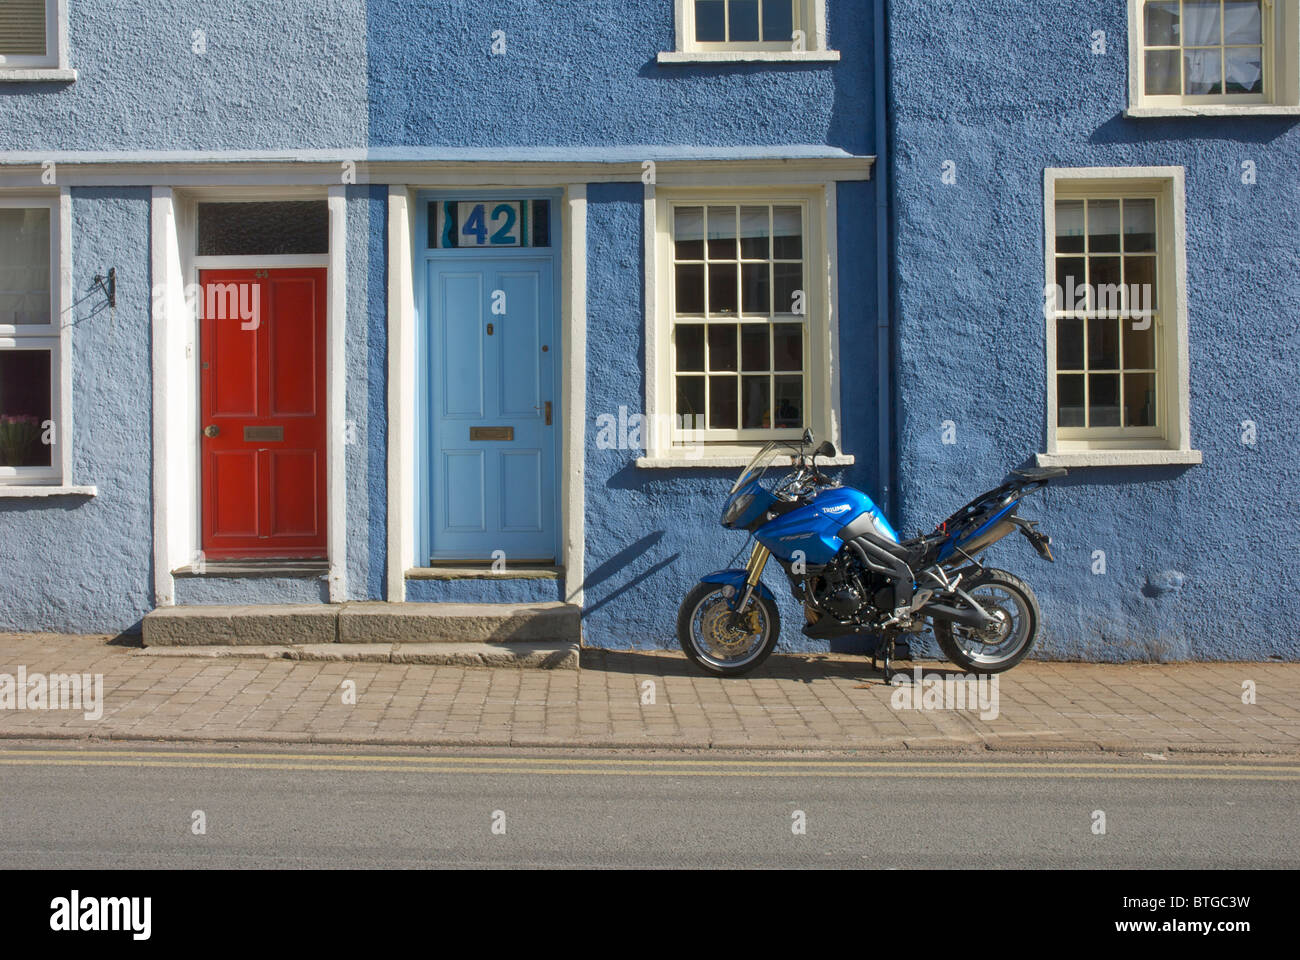 Motorbike and terraced houses, Soutergate, Ulverston, Cumbria, England UK - Stock Image